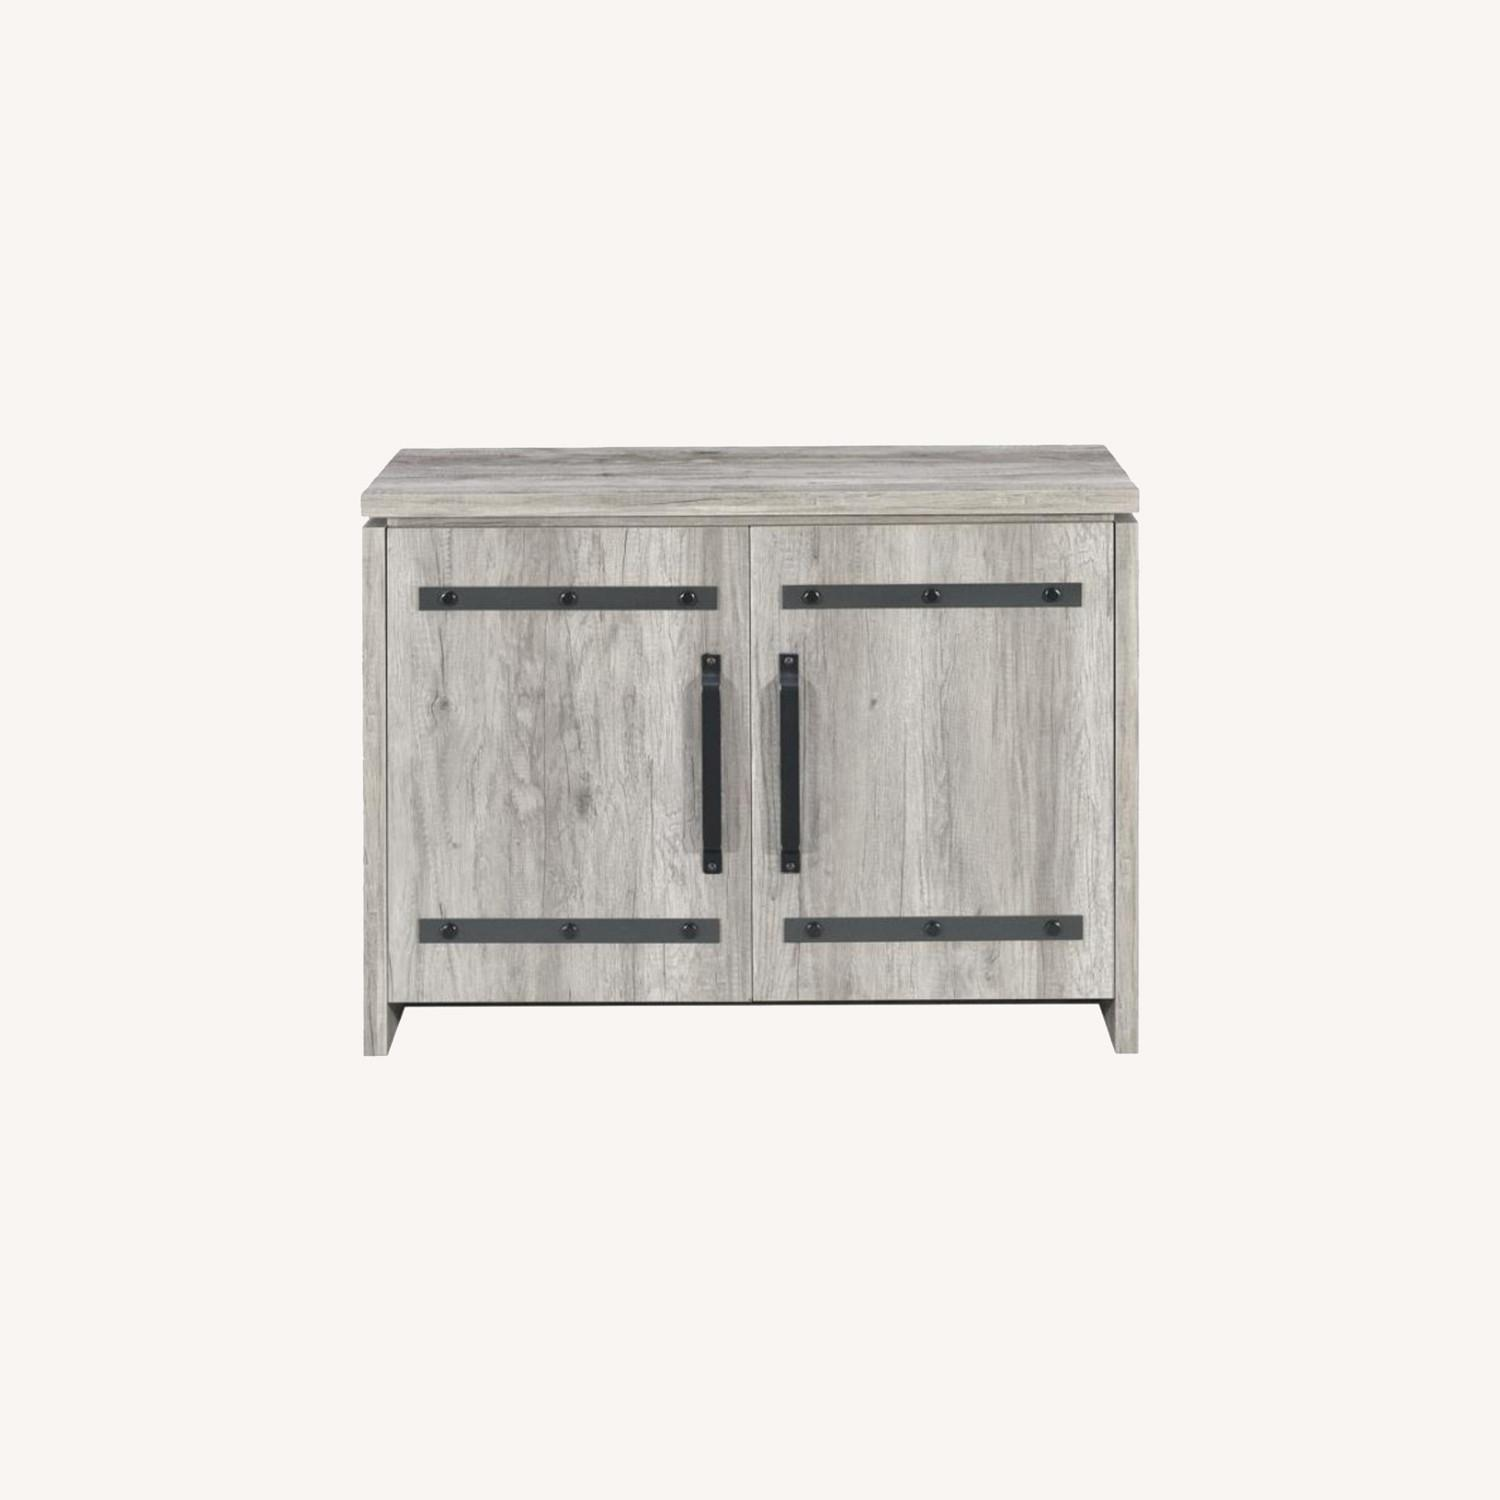 Accent Cabinet In Grey Driftwood W/ Rustic Metals - image-7